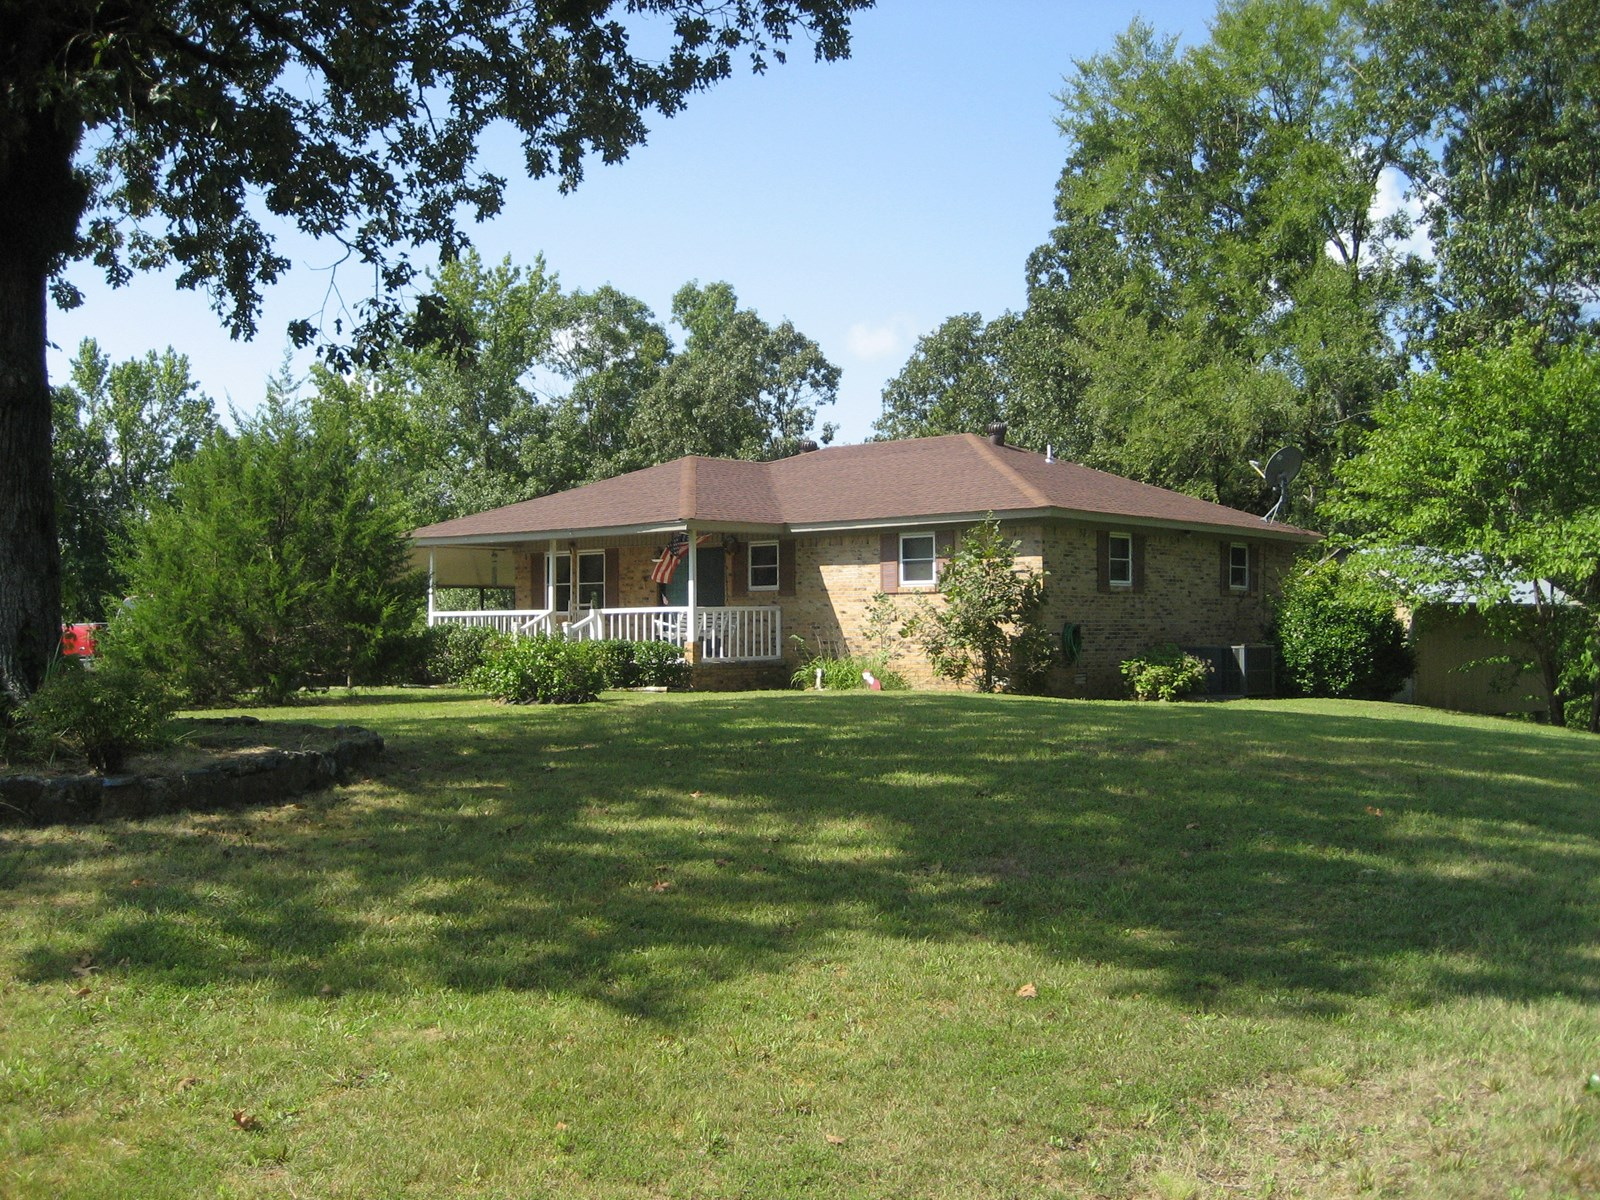 HOME FOR SALE IN TN WITH POND AND ROOM FOR A GARDEN